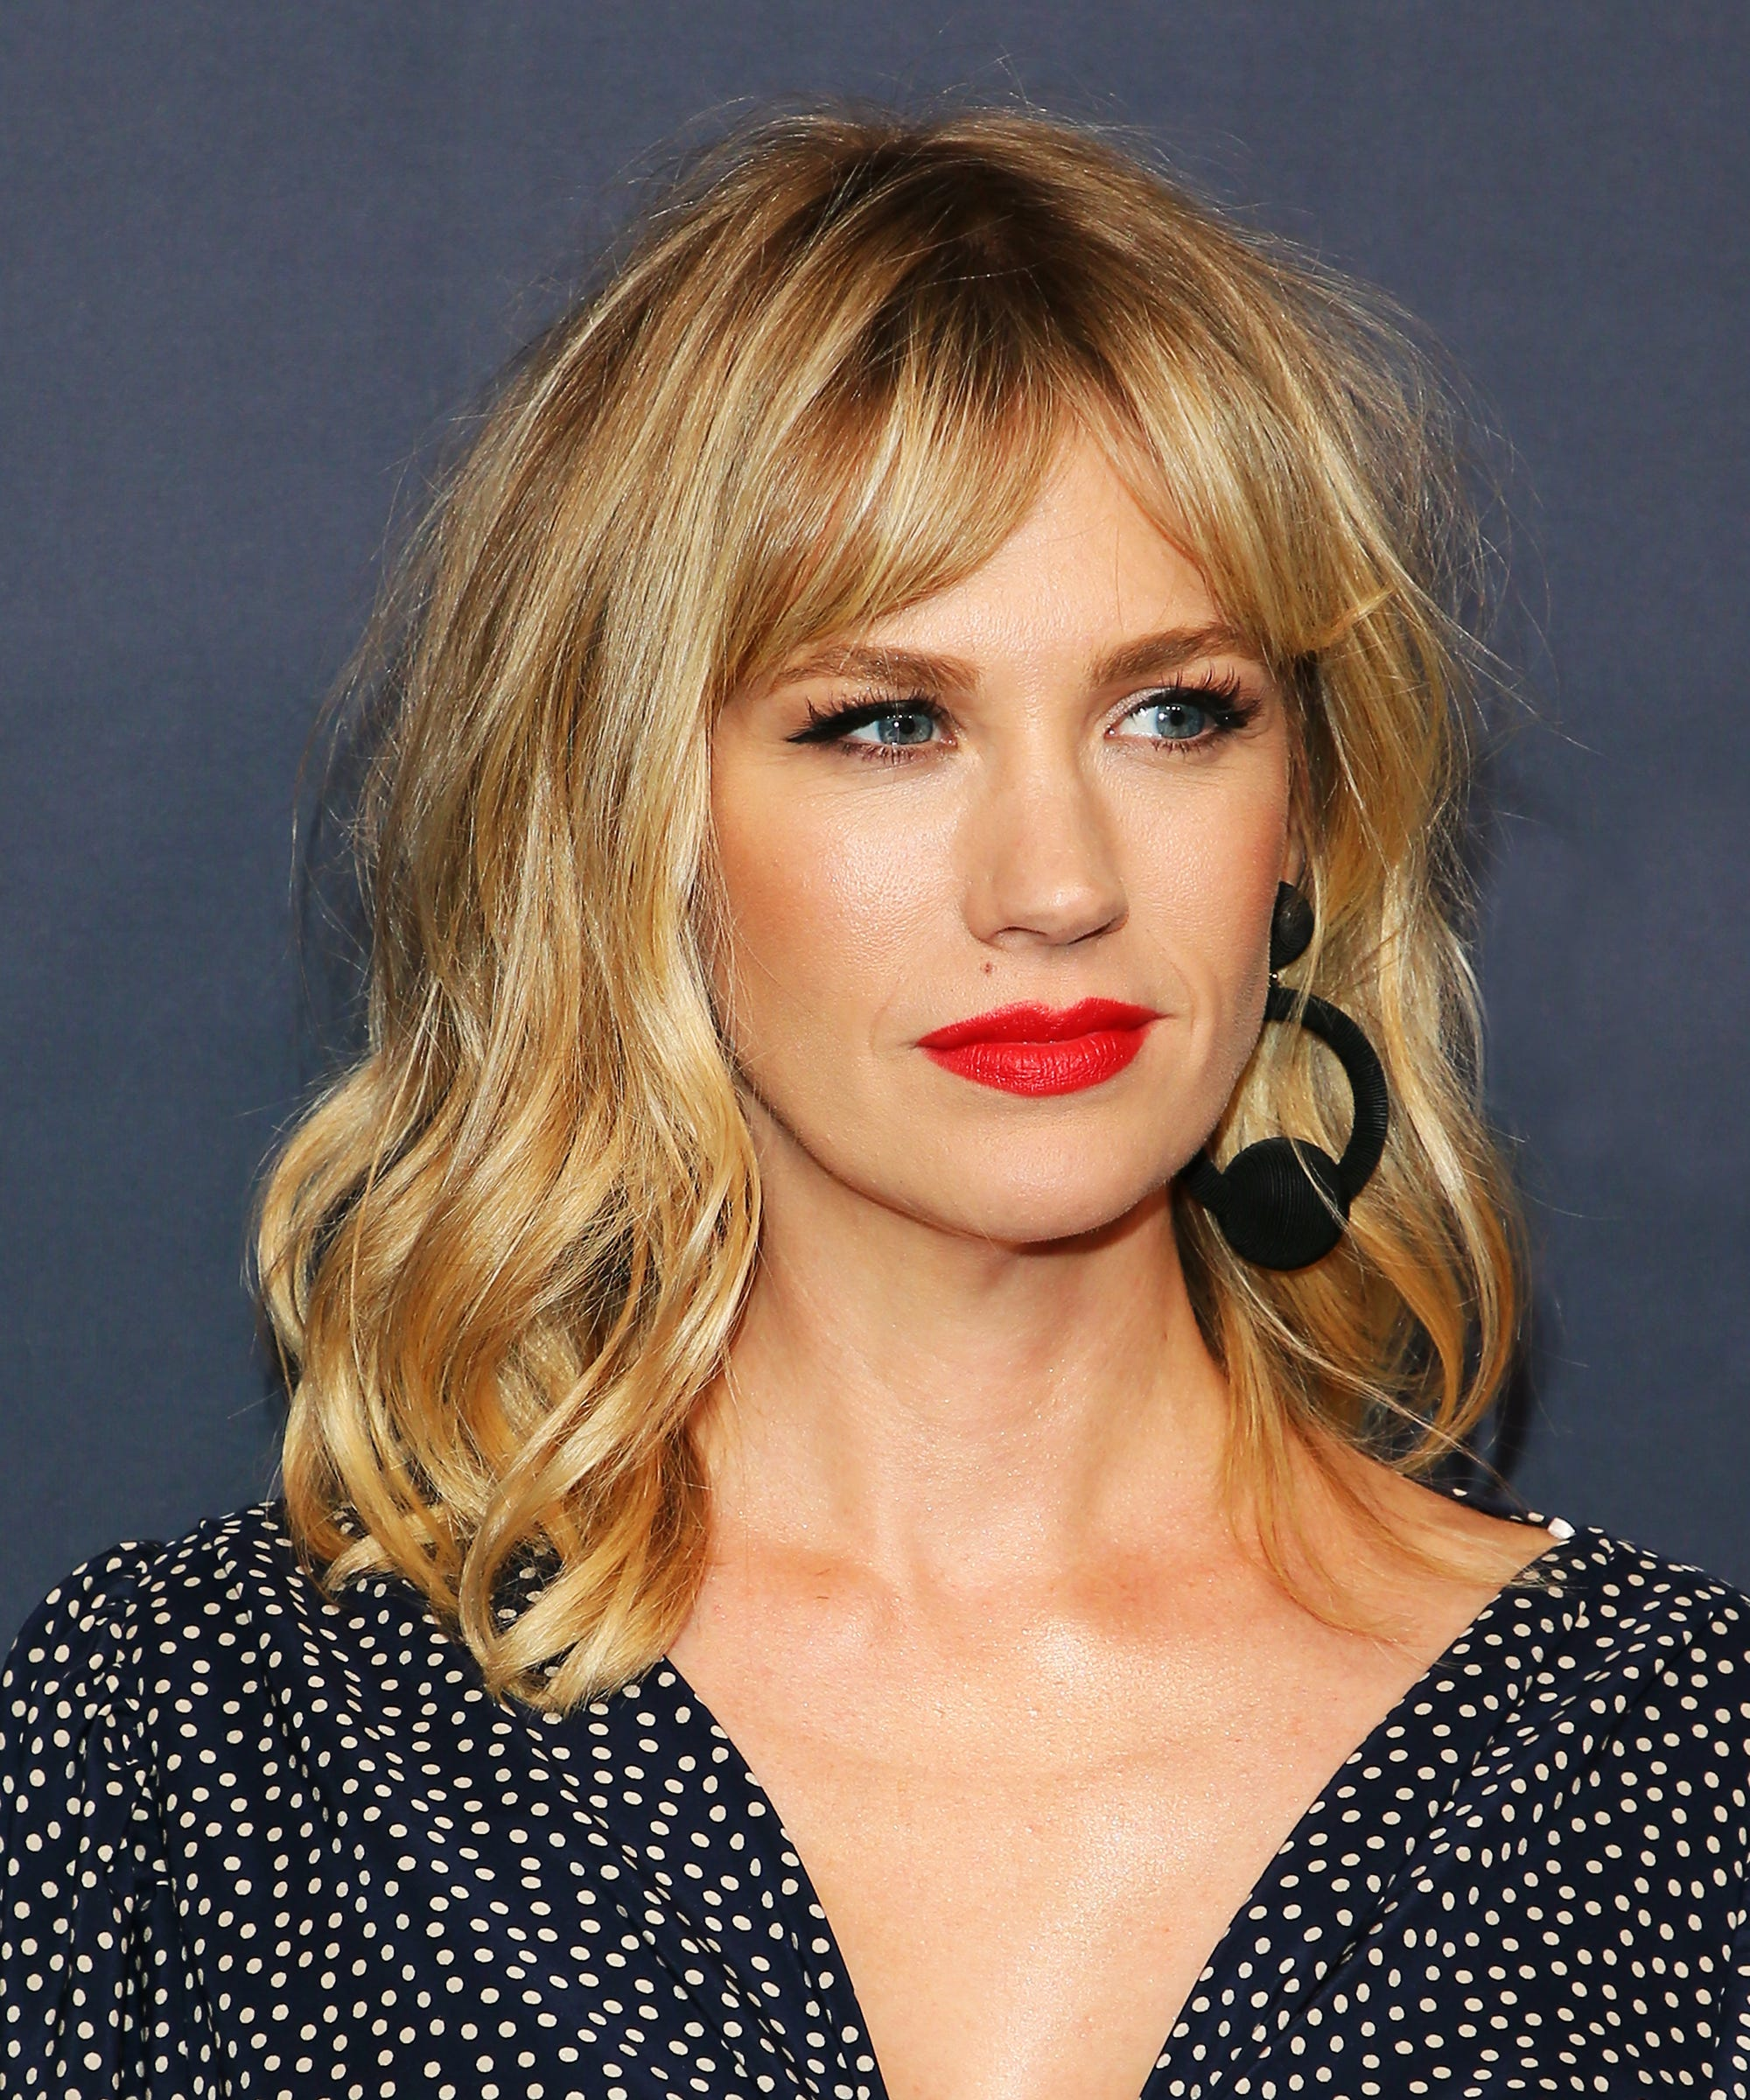 Curtain Fring Celebrity Hairstyle Trend Kirsten Dunst